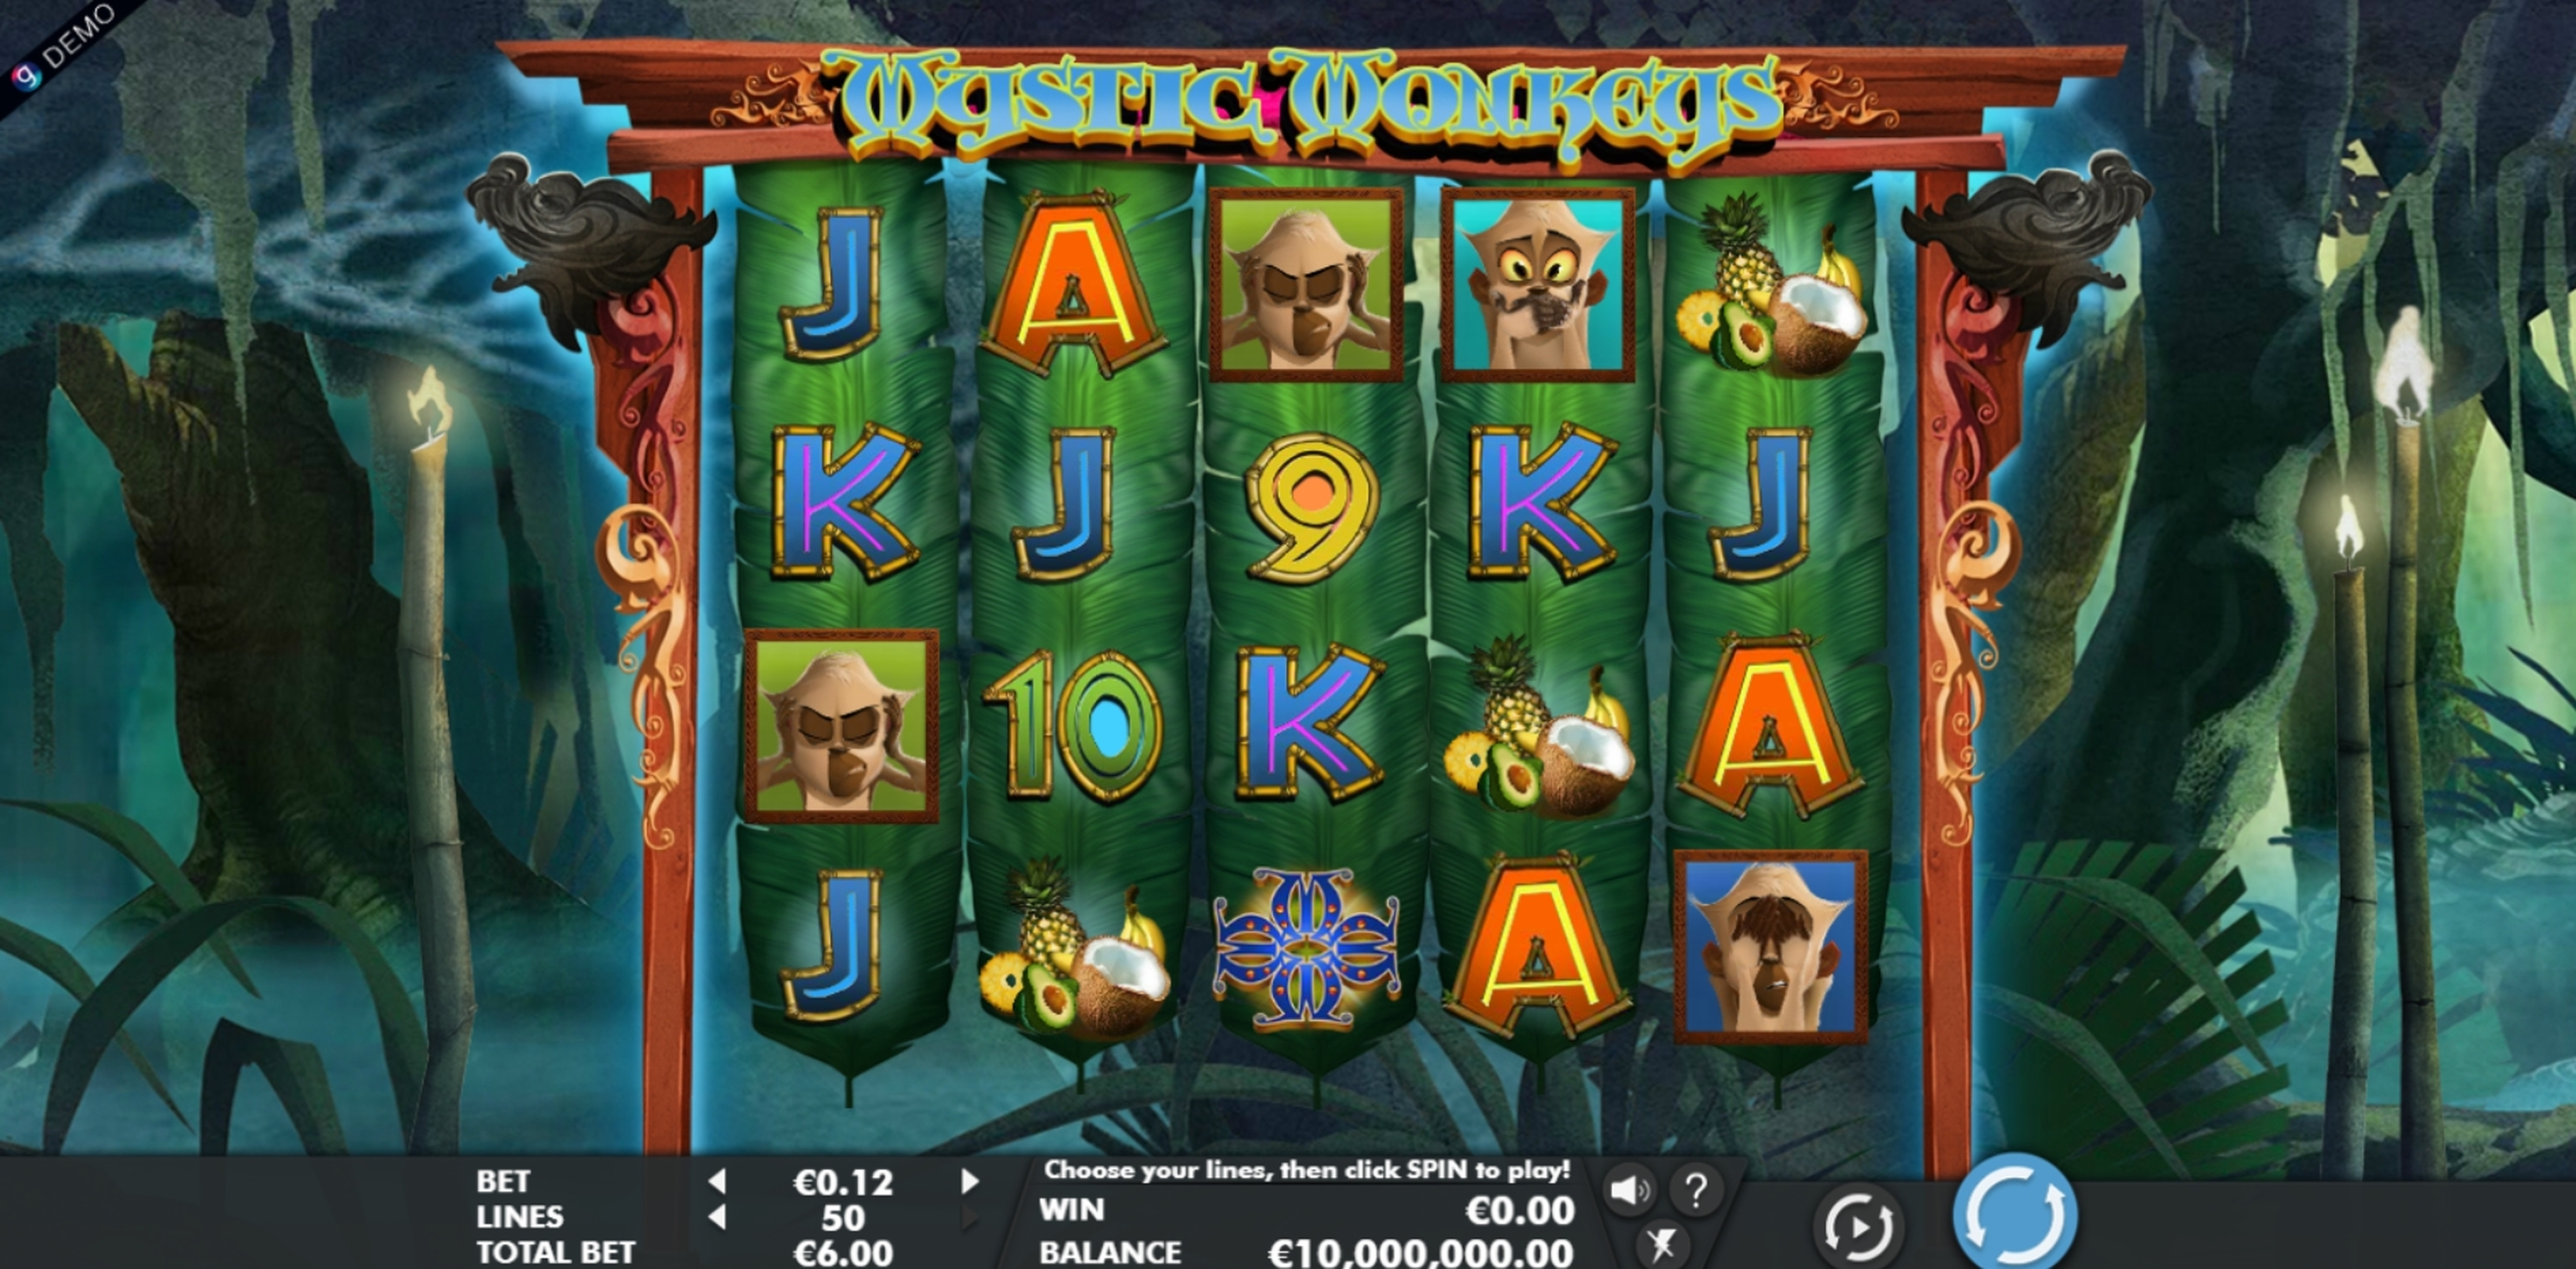 Reels in Mystic Monkeys Slot Game by Genesis